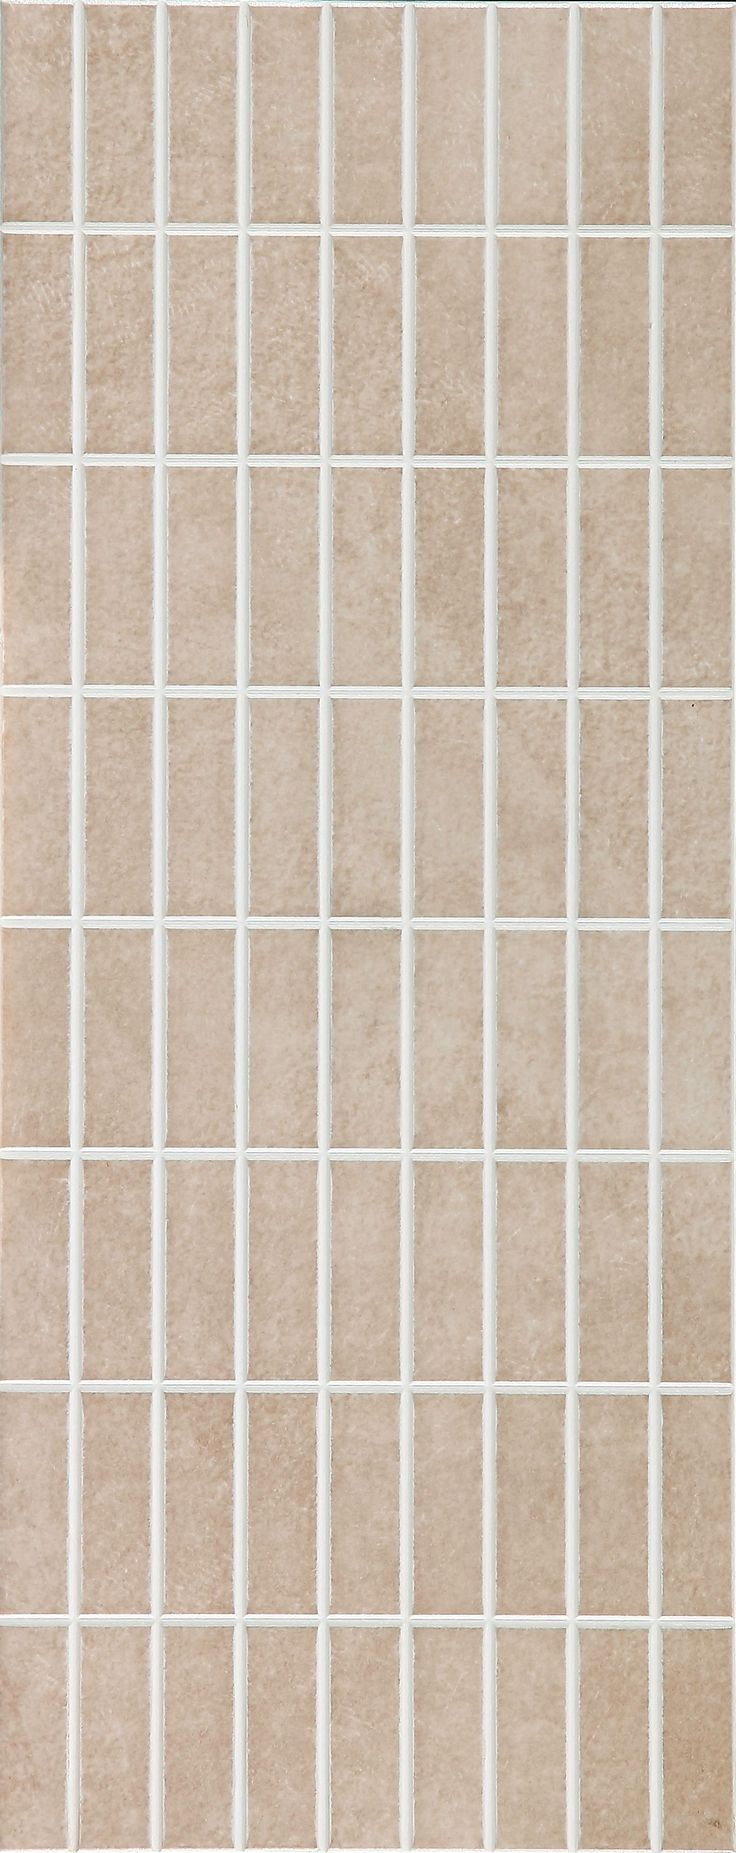 Bq Ceramic Kitchen Floor Tiles 17 Best Images About Tiles On Pinterest Mosaics Taupe And Copper